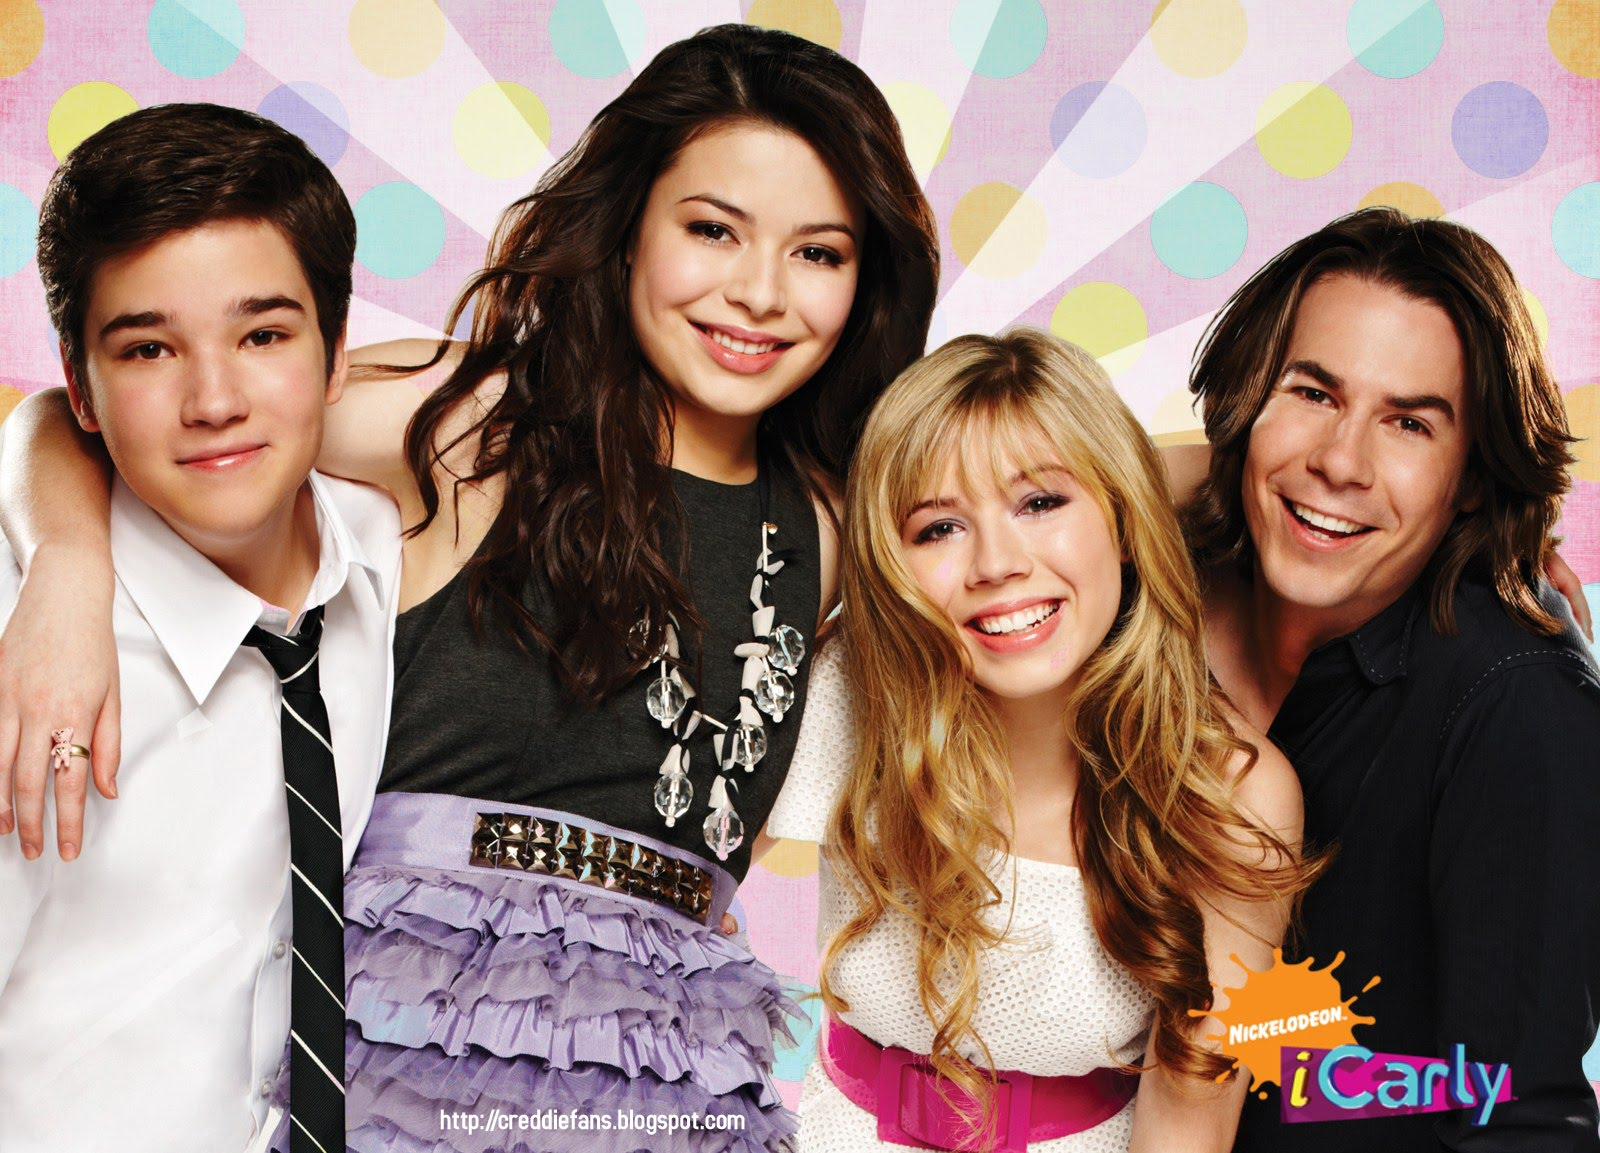 icarly-tapeta-na-pulpit  14   I Carly